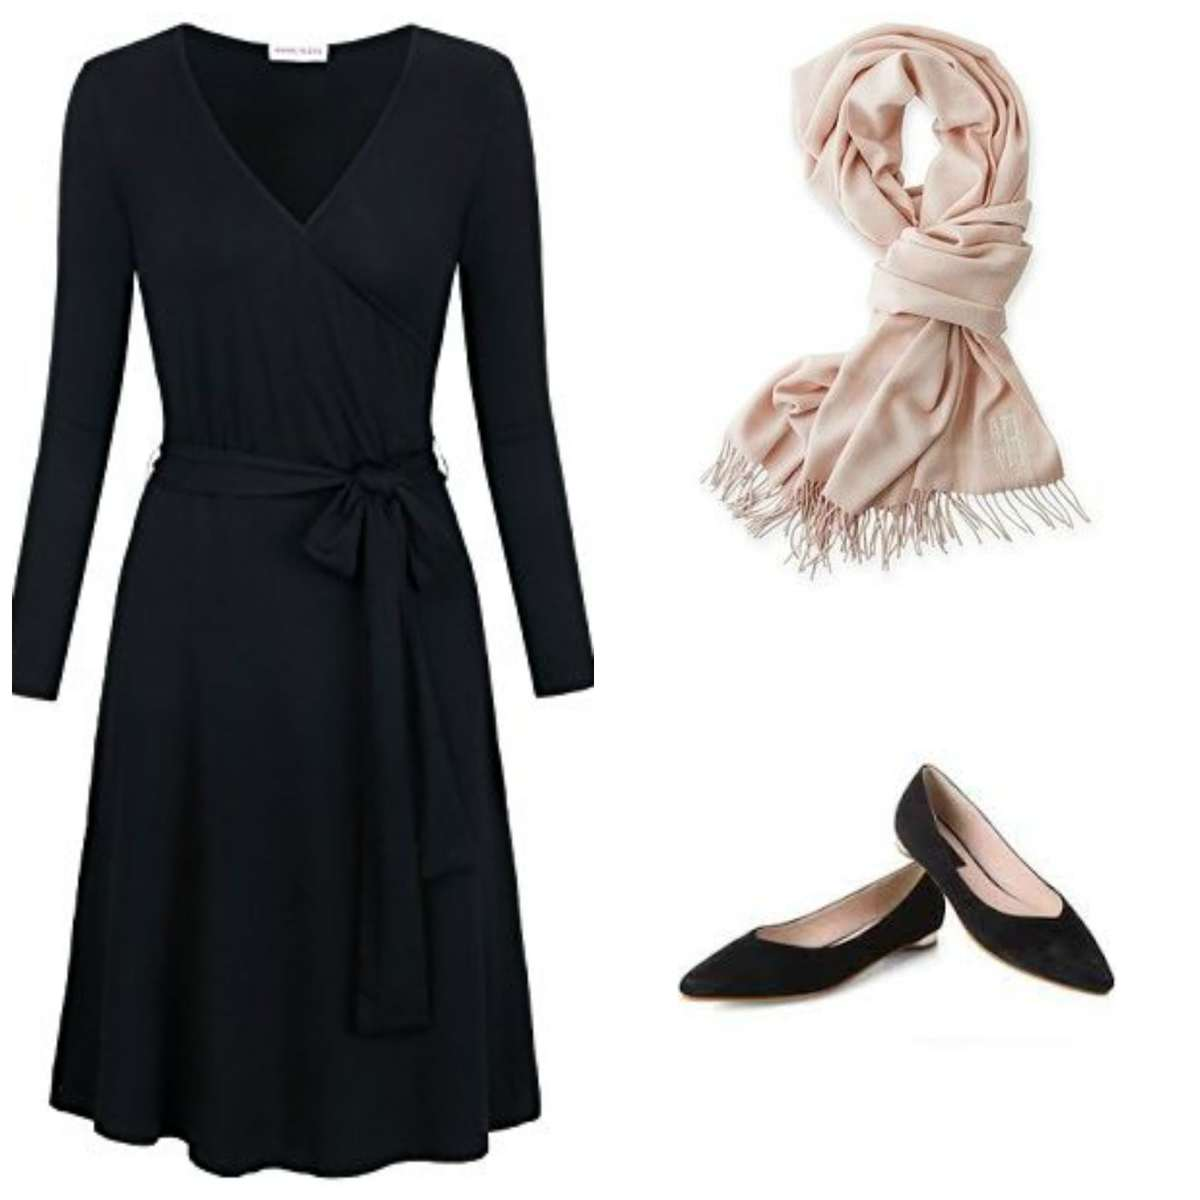 Travel look from the capsule wardrobe: a black matte jersey wrap dress with a cream pashmina and black flats